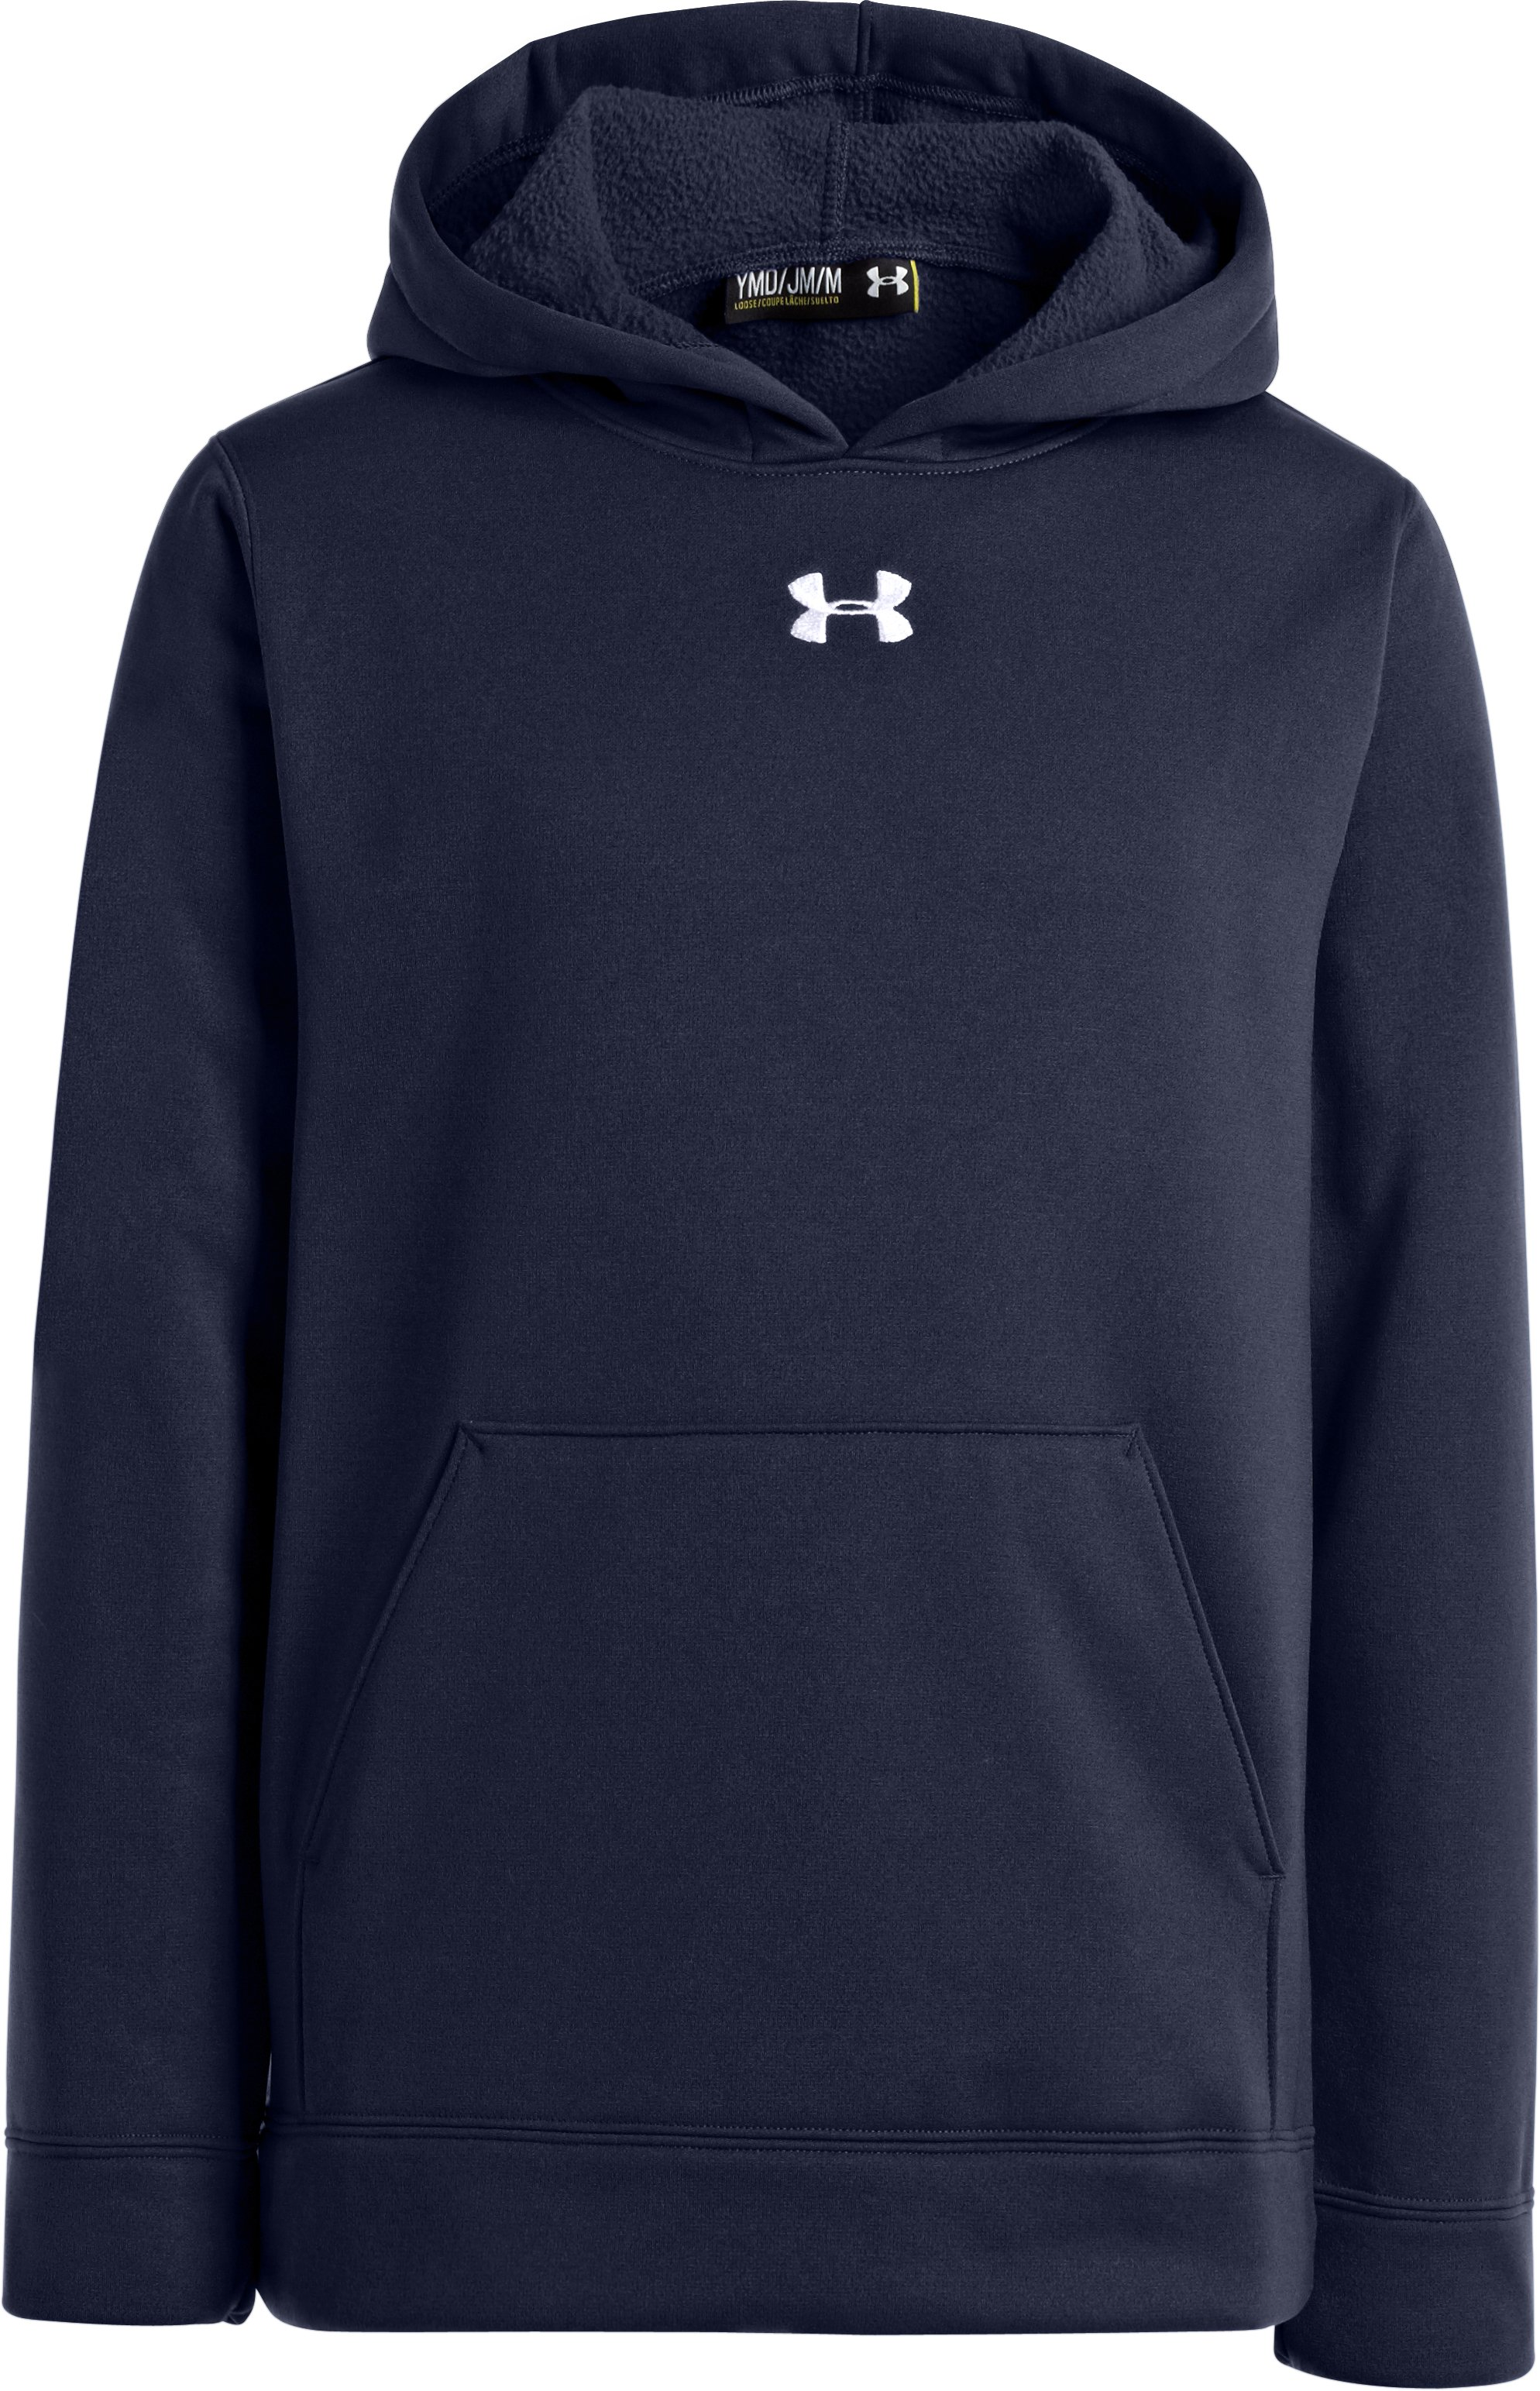 Boys' Armour® Fleece Storm Team Hoodie, Midnight Navy, zoomed image